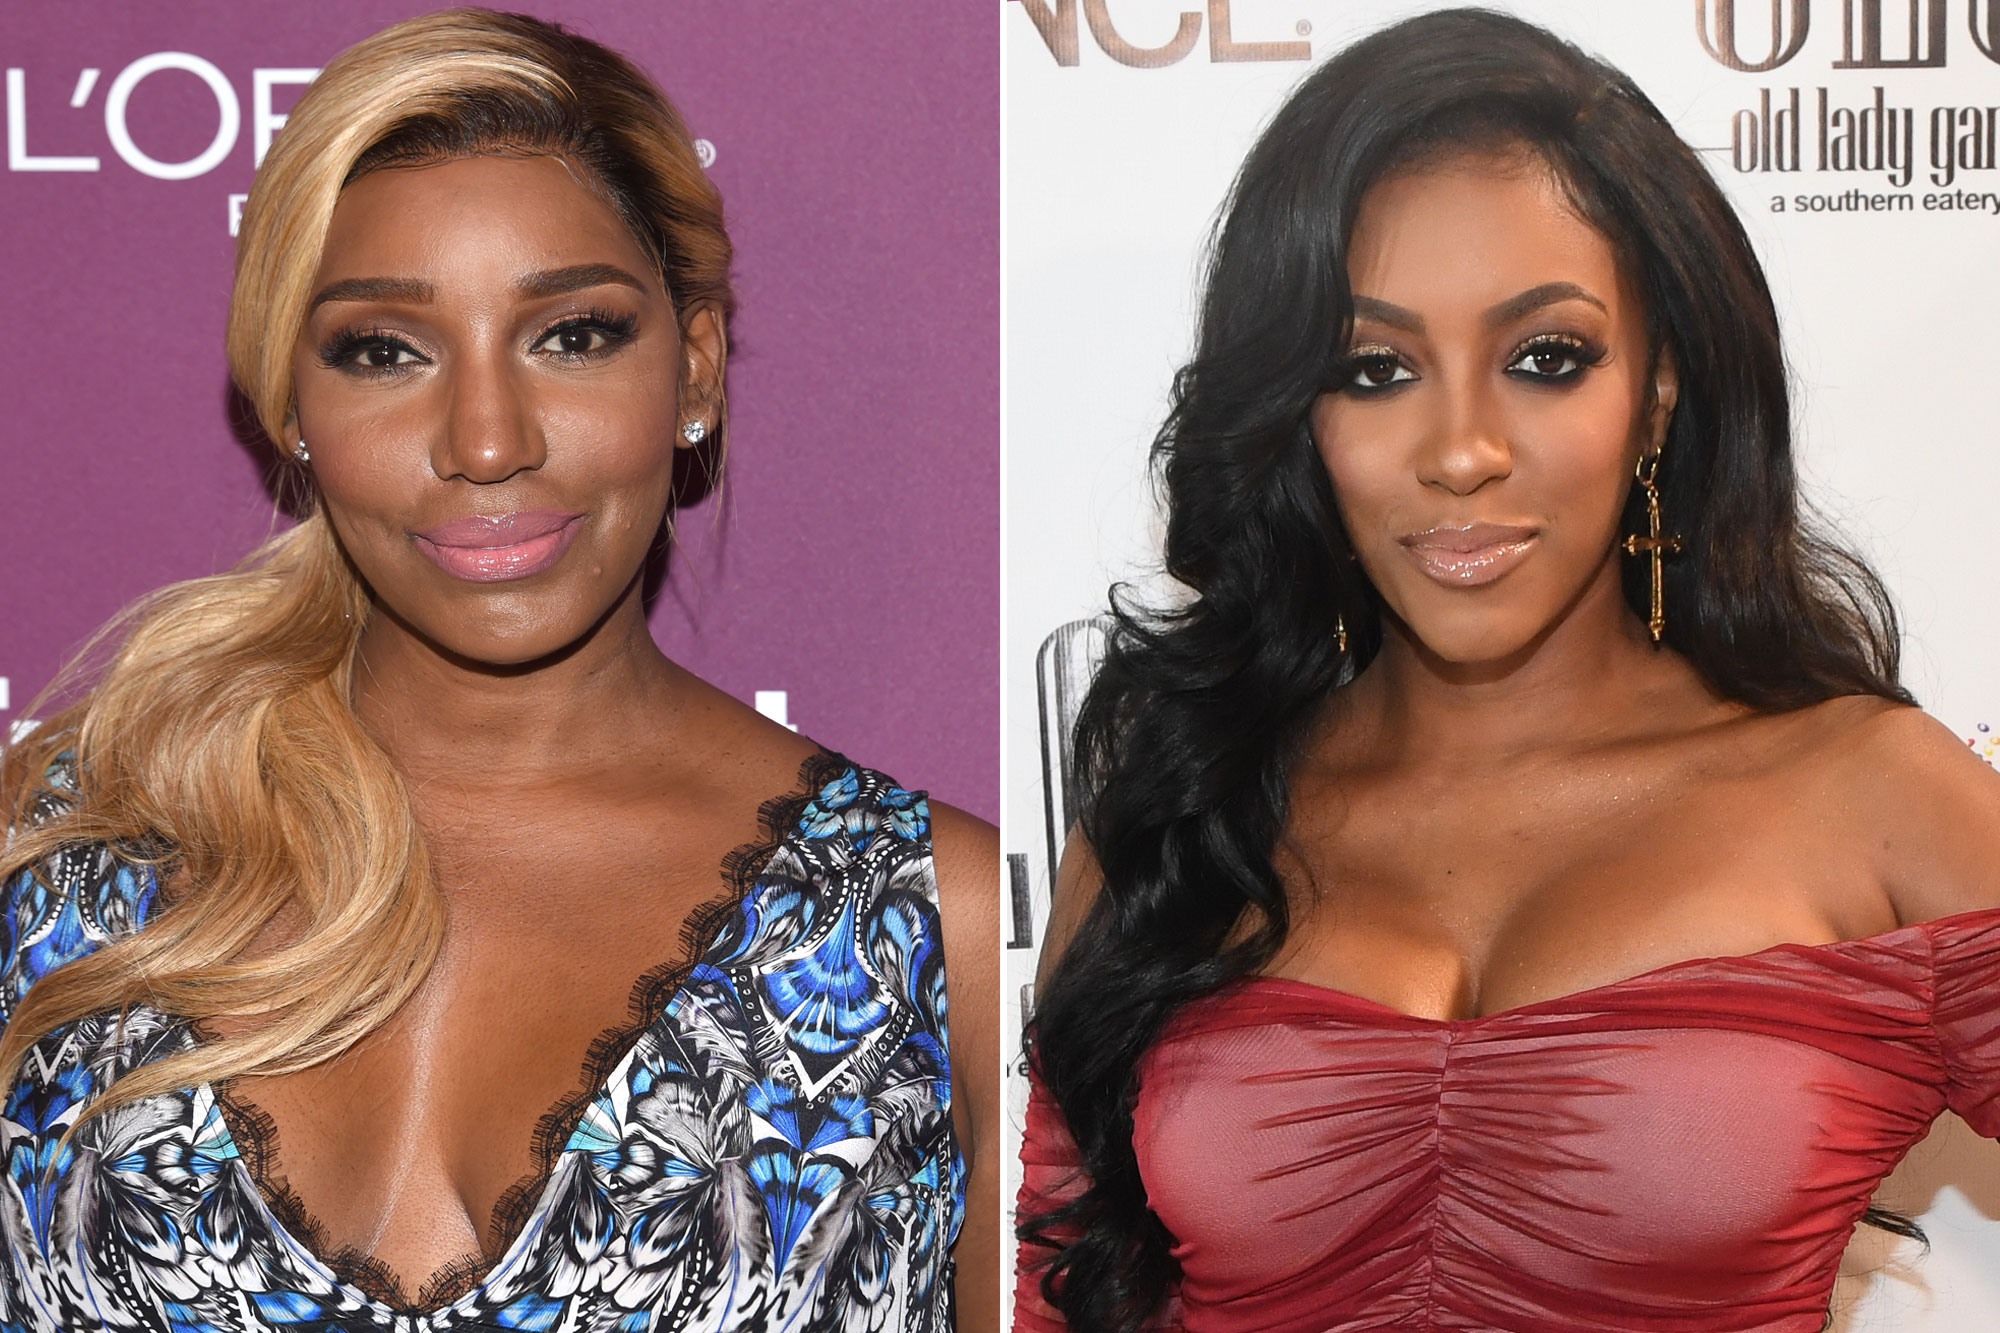 porsha-williams-and-nene-leakes-will-act-professional-and-film-together-despite-their-drama